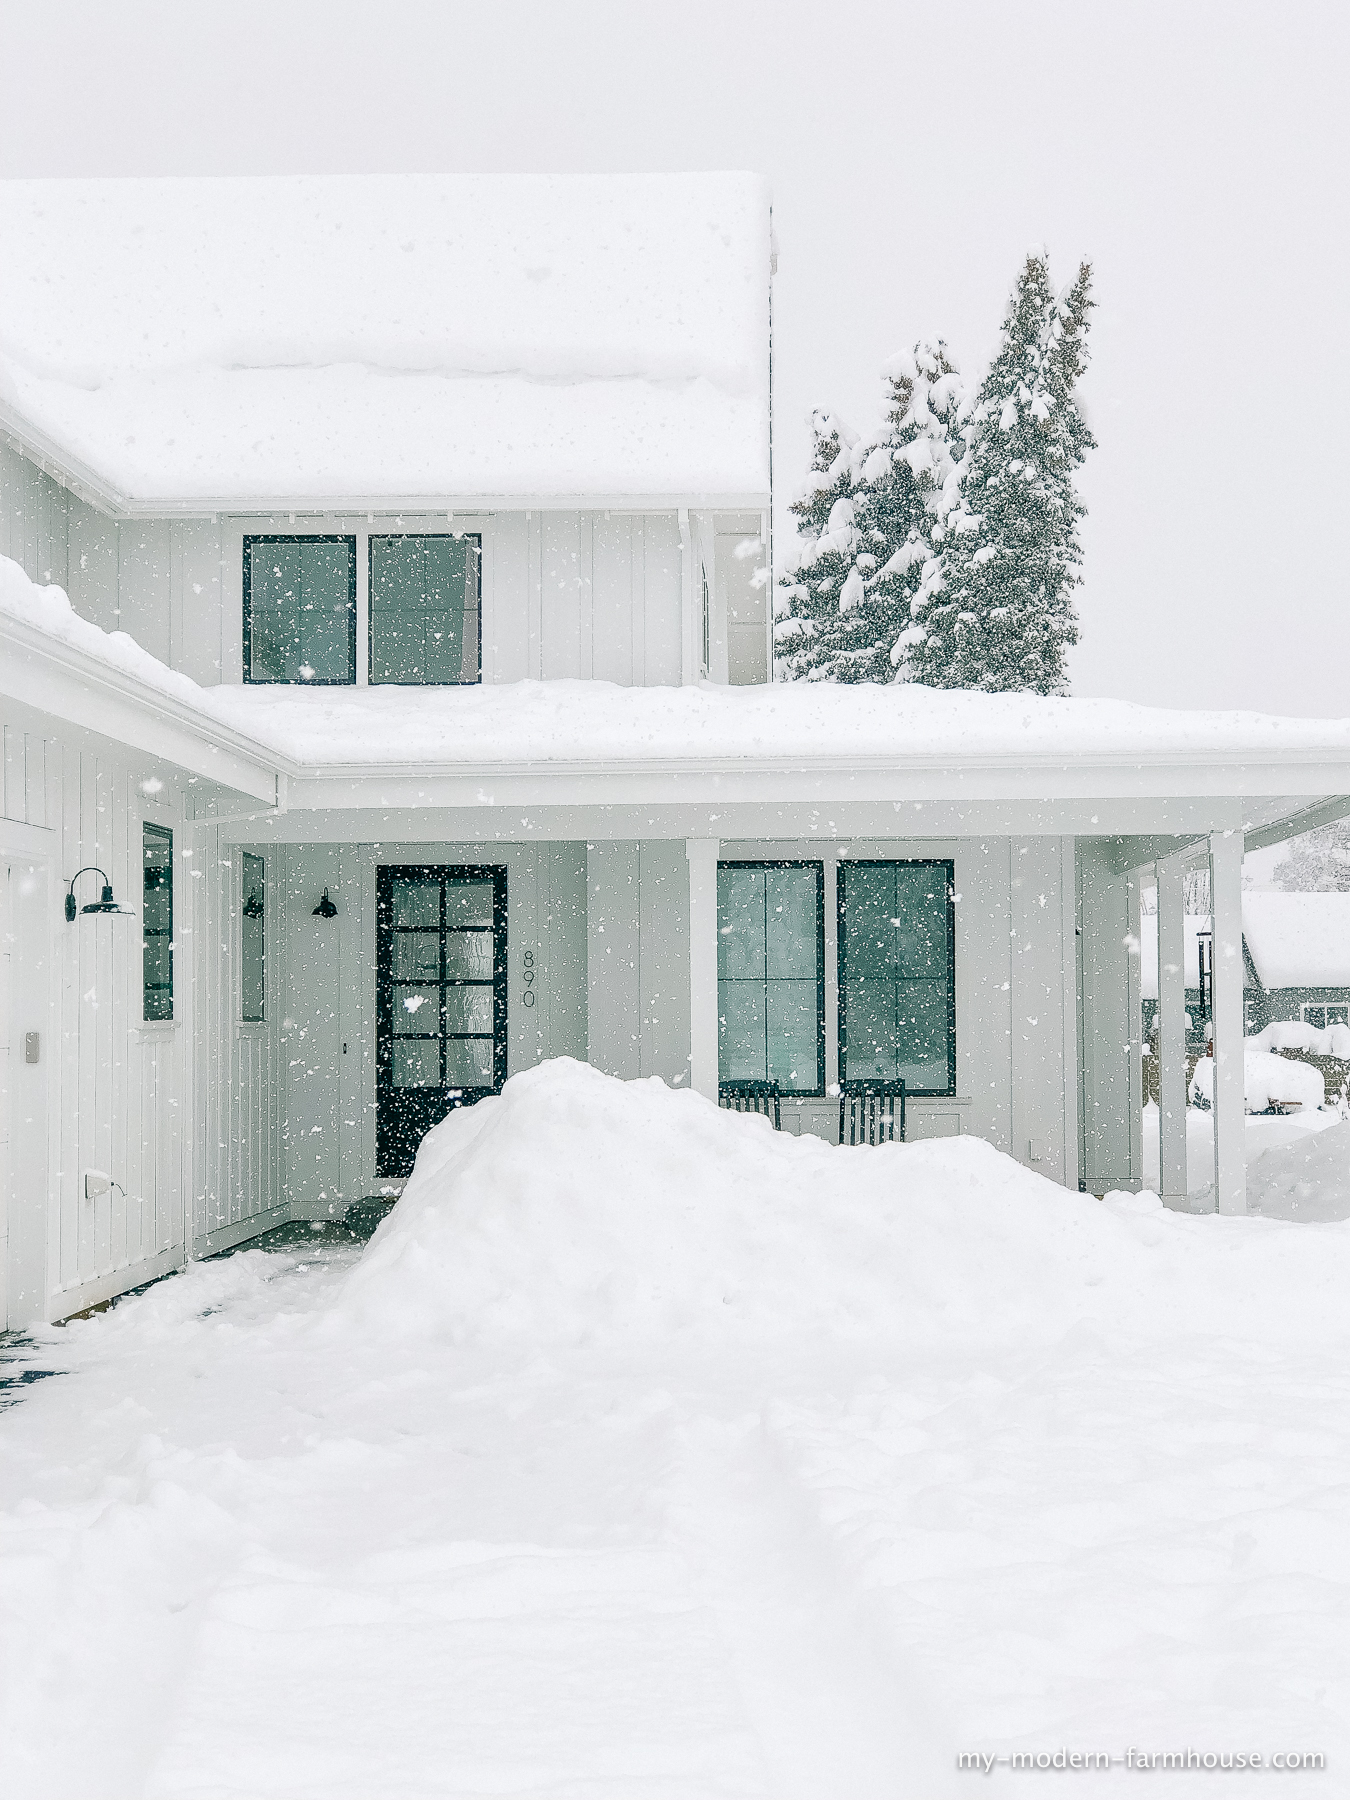 Prepare Your House for Winter Weather